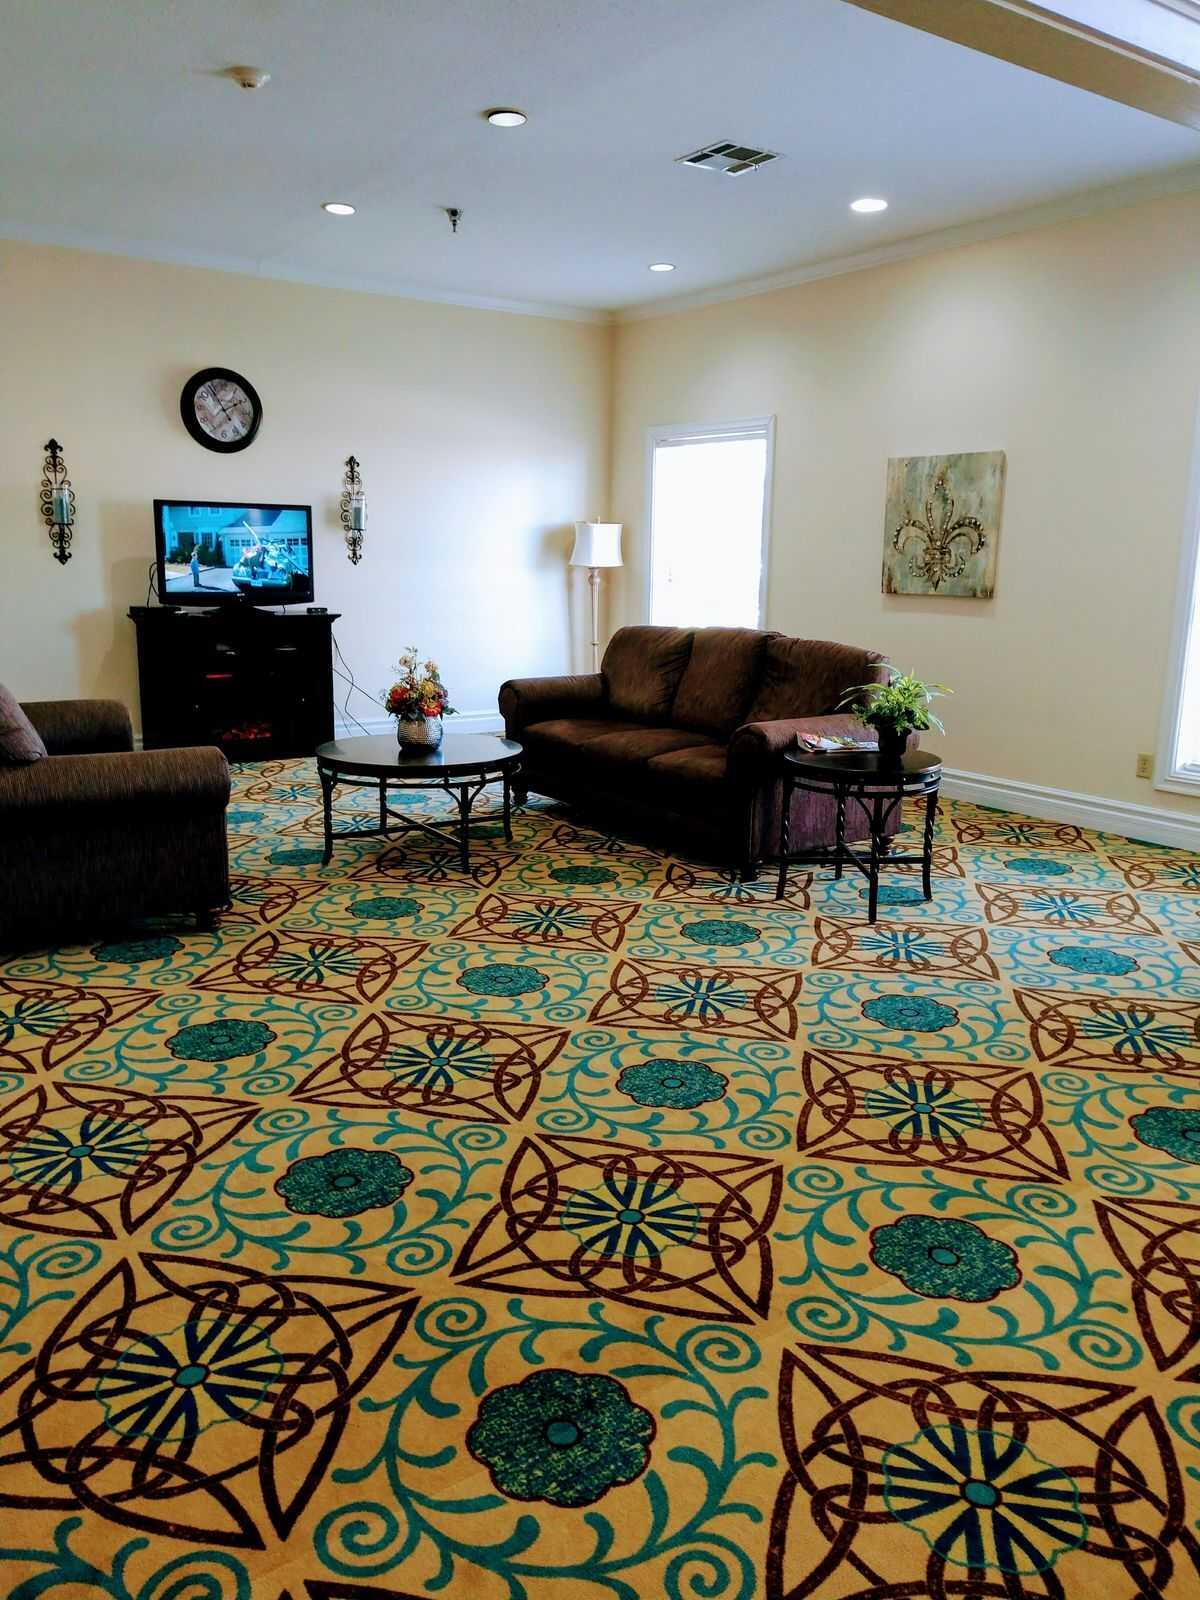 Photo of Savannah Grand of Bossier City, Assisted Living, Bossier City, LA 3